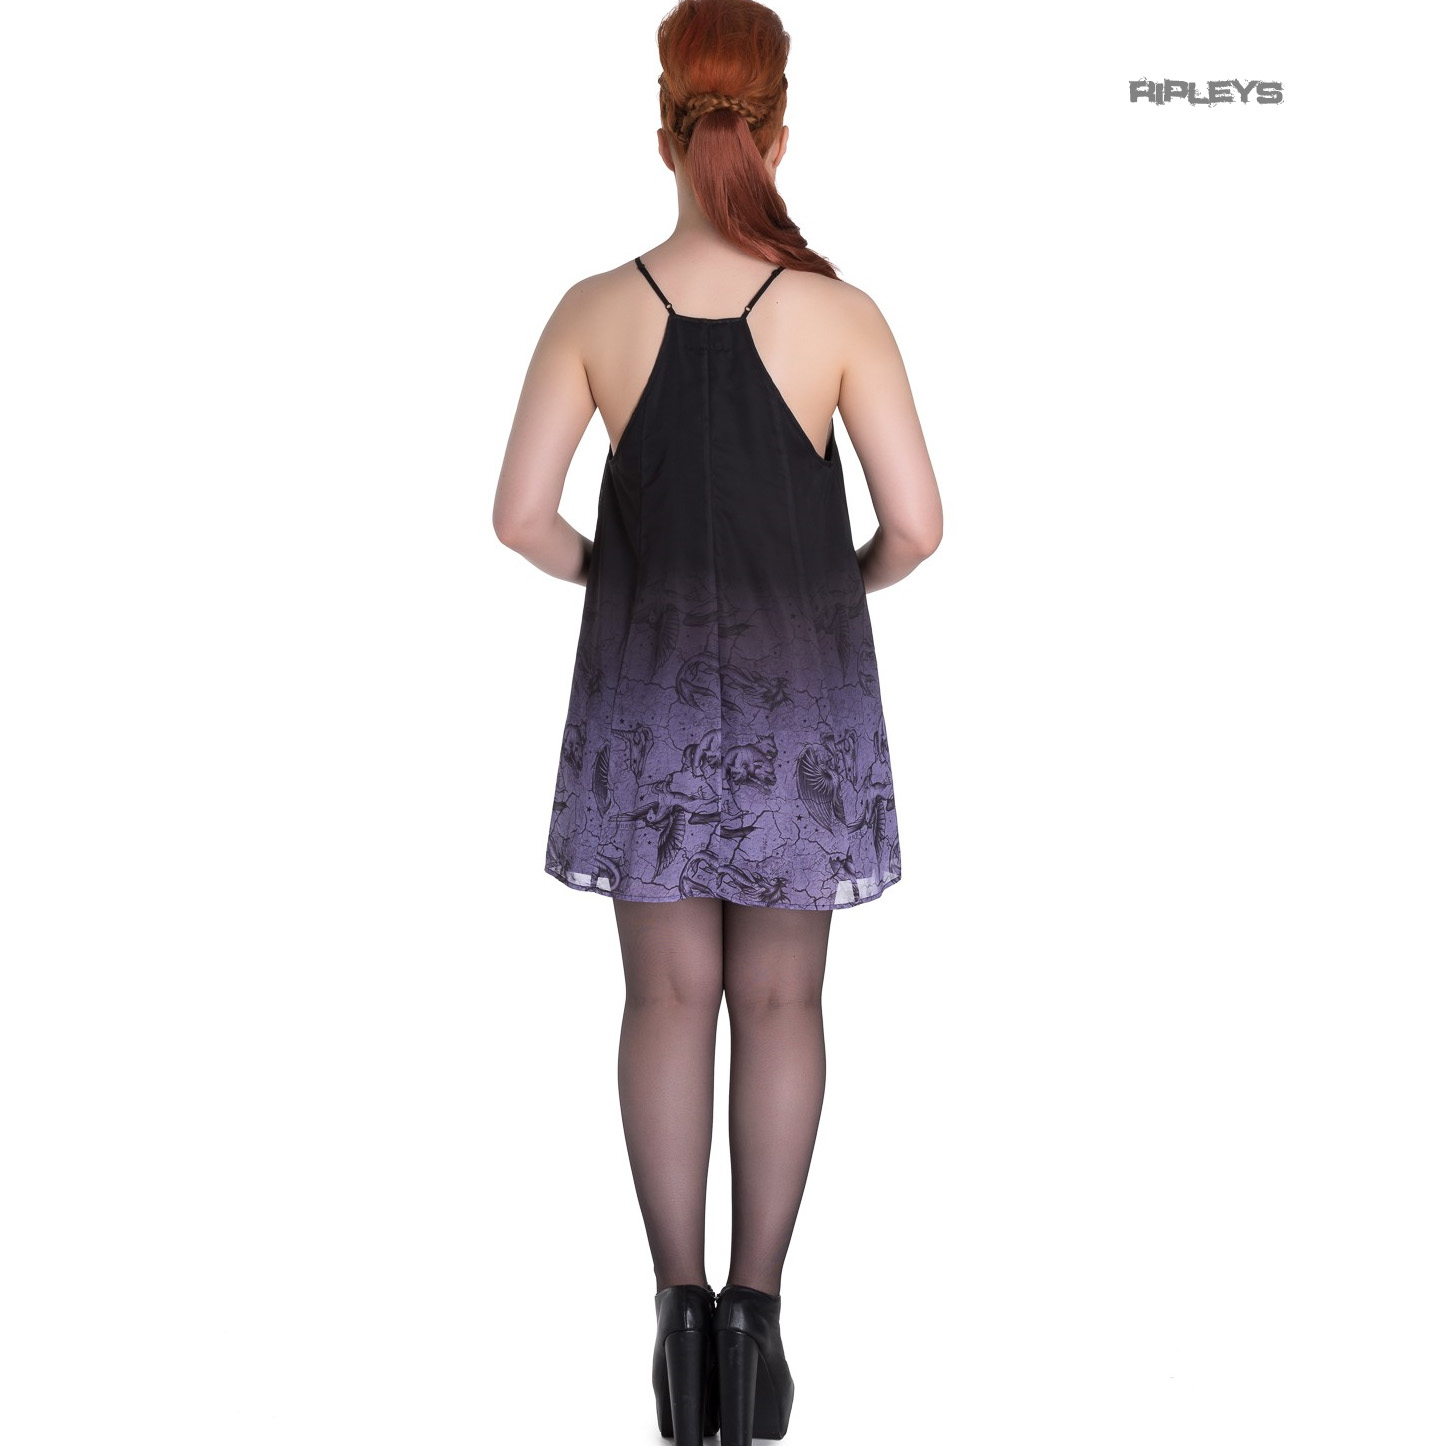 Hell-Bunny-Spin-Doctor-Goth-Lace-Up-Mini-Dress-EVADINE-Purple-Black-All-Sizes thumbnail 12